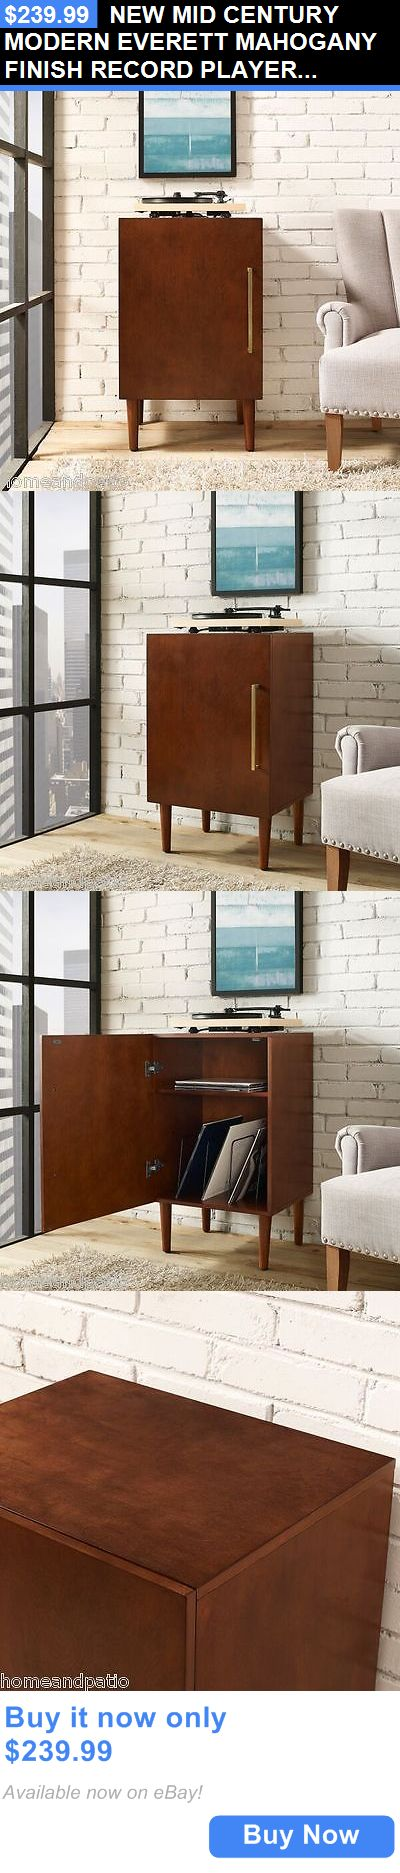 Home Audio: New Mid Century Modern Everett Mahogany Finish Record Player Stand By Crosley BUY IT NOW ONLY: $239.99